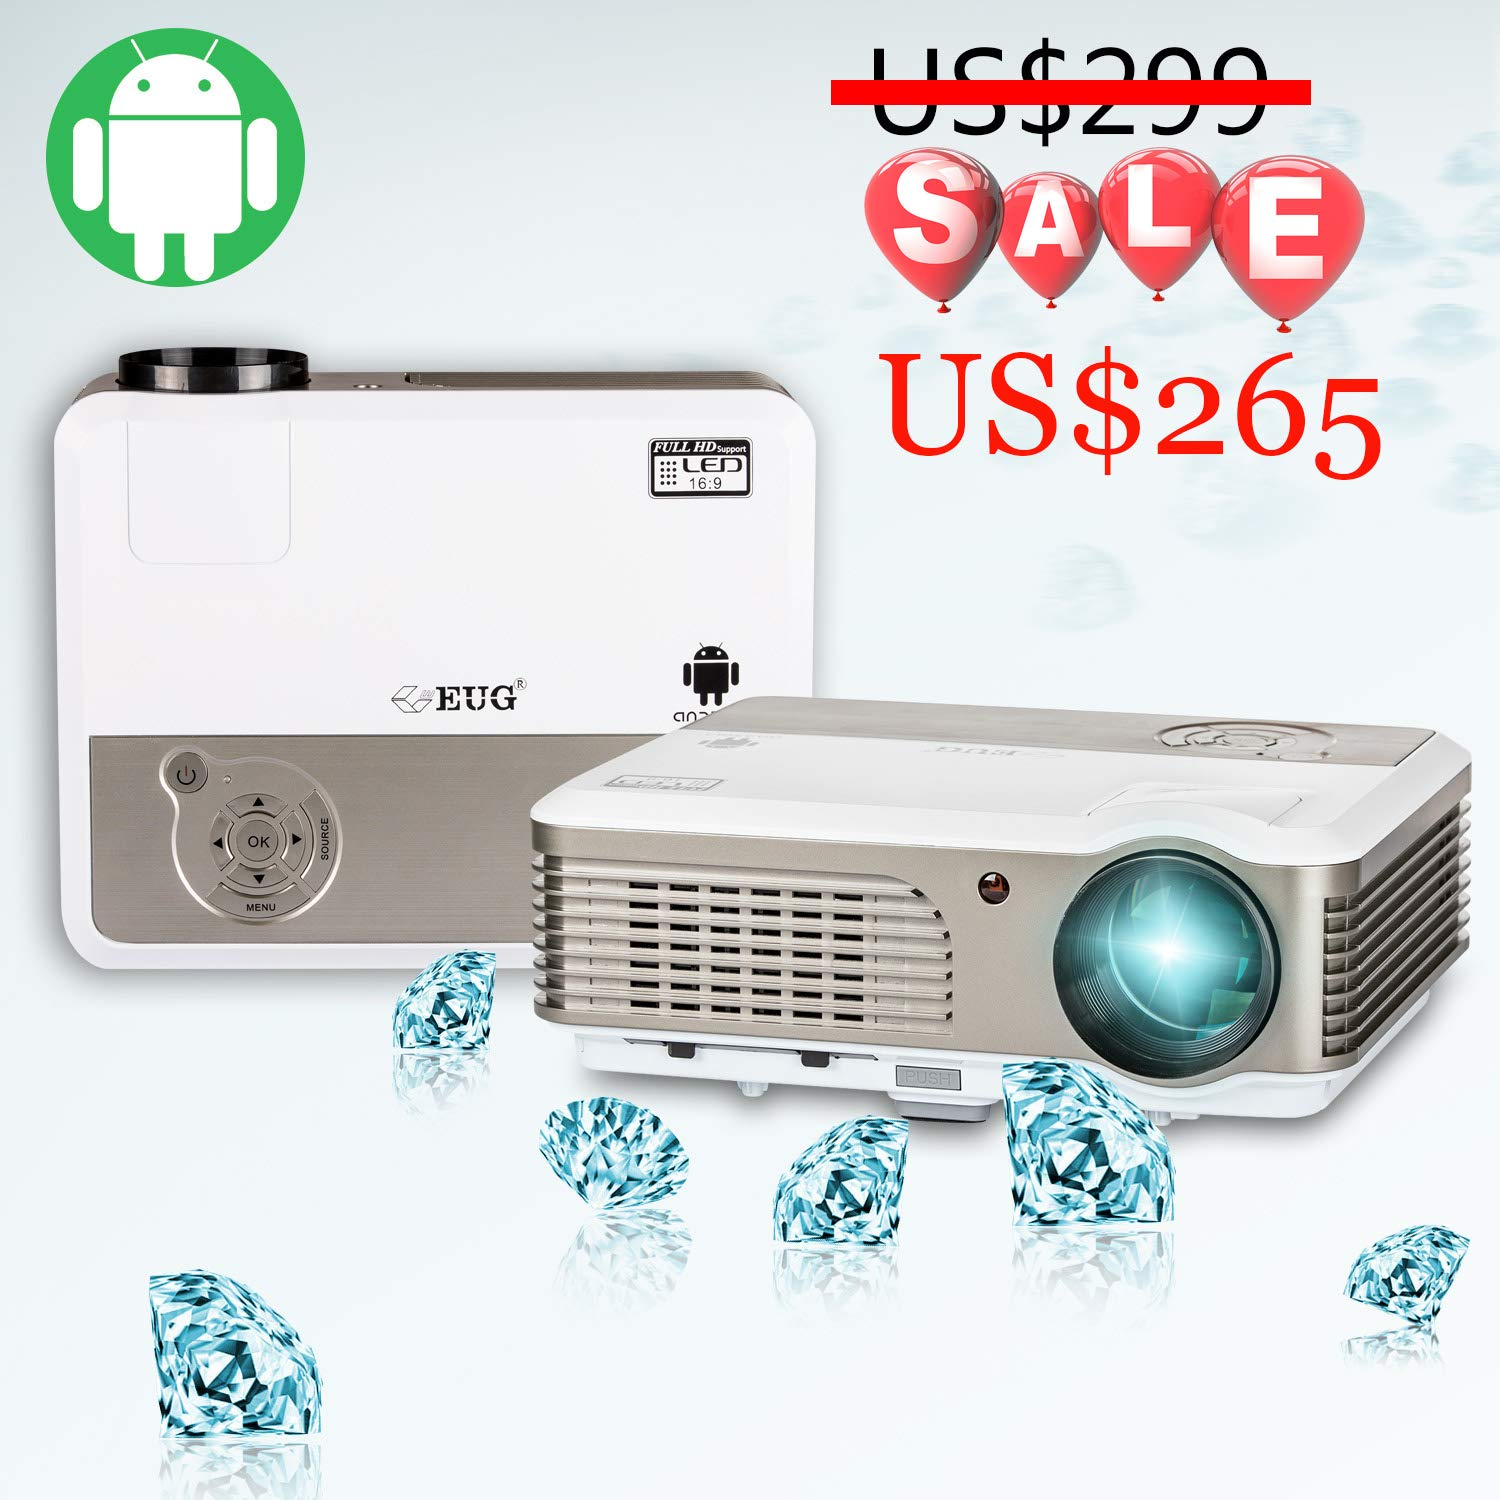 98d706ed386d60 Wireless LCD Projector with Android, Smart Home Cinema WiFi Video Projector  2600 Lumen Support HD 1080P 720P HDMI USB RCA Audio, DVD Media Player  Smartphone ...